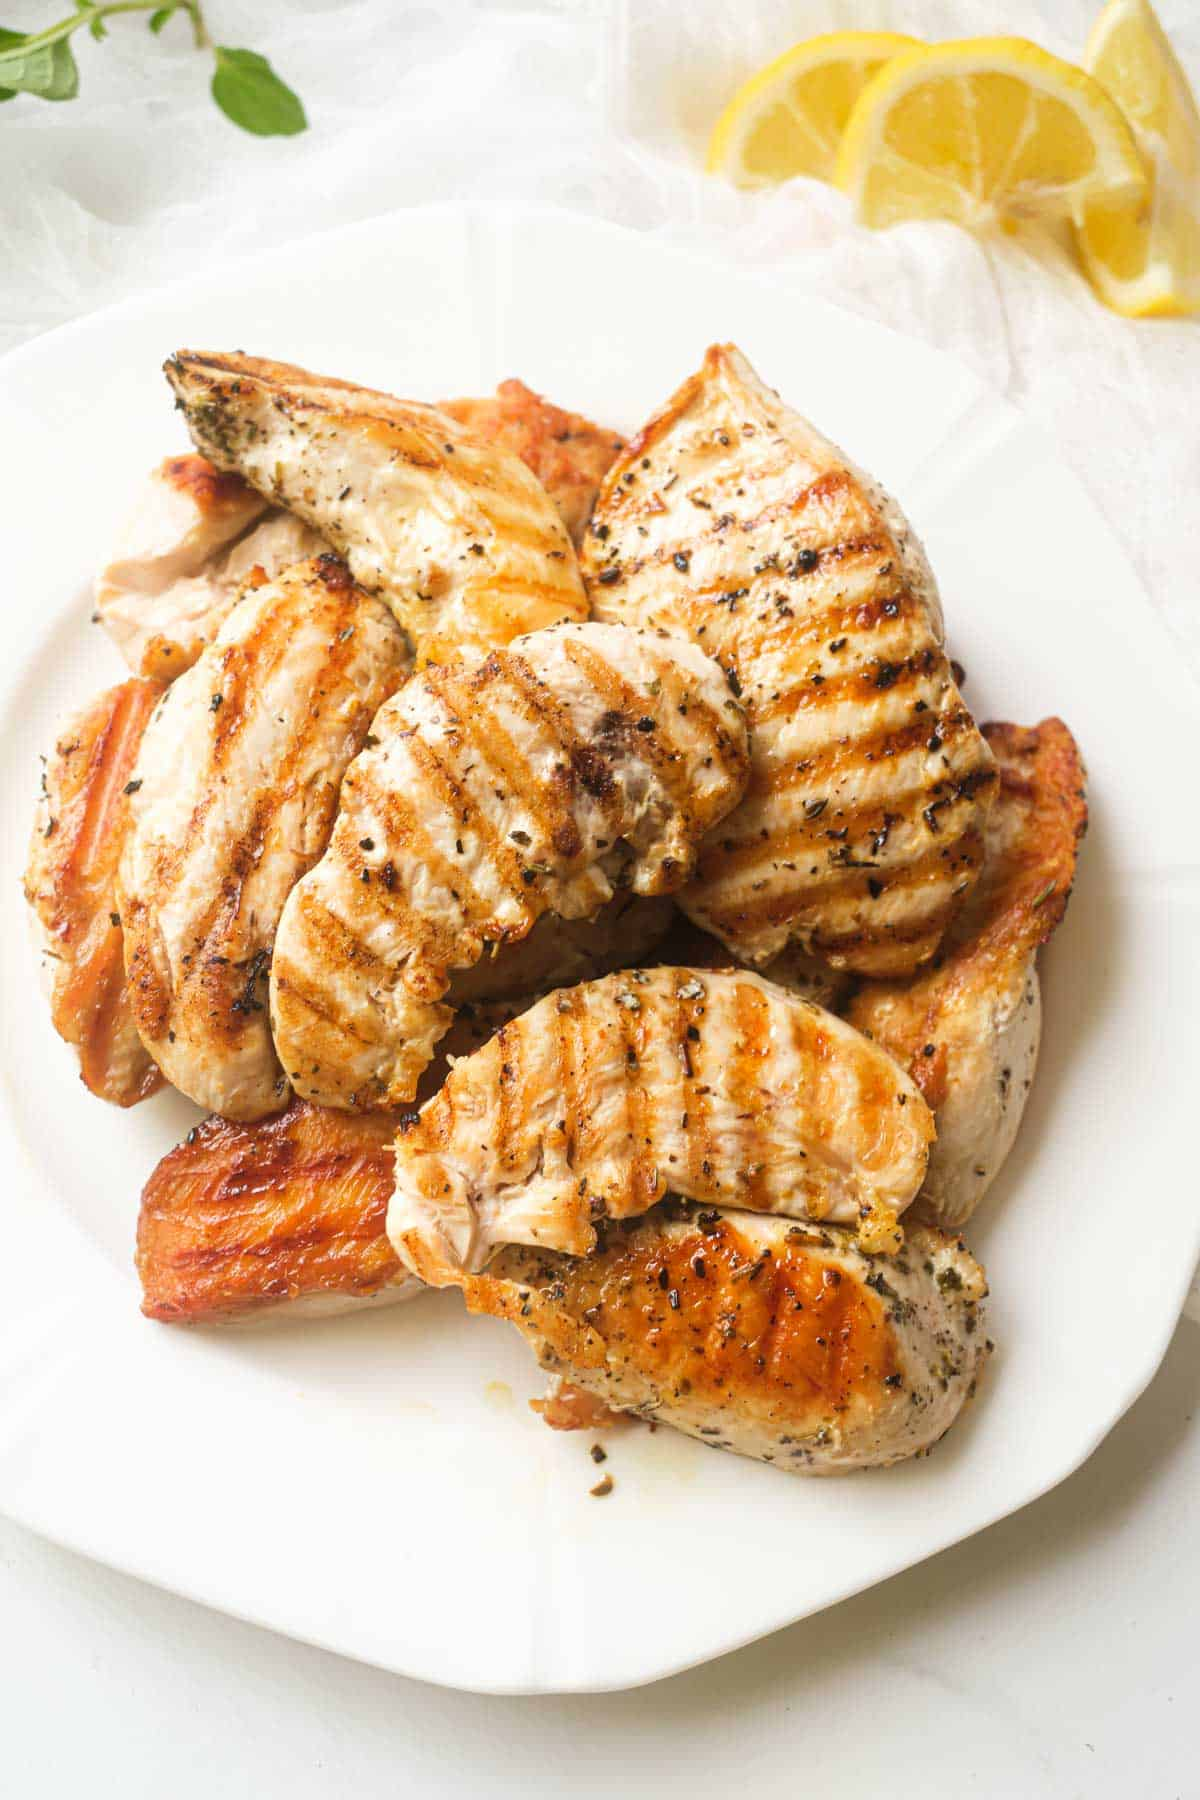 the completed grilled chicken tenders recipe